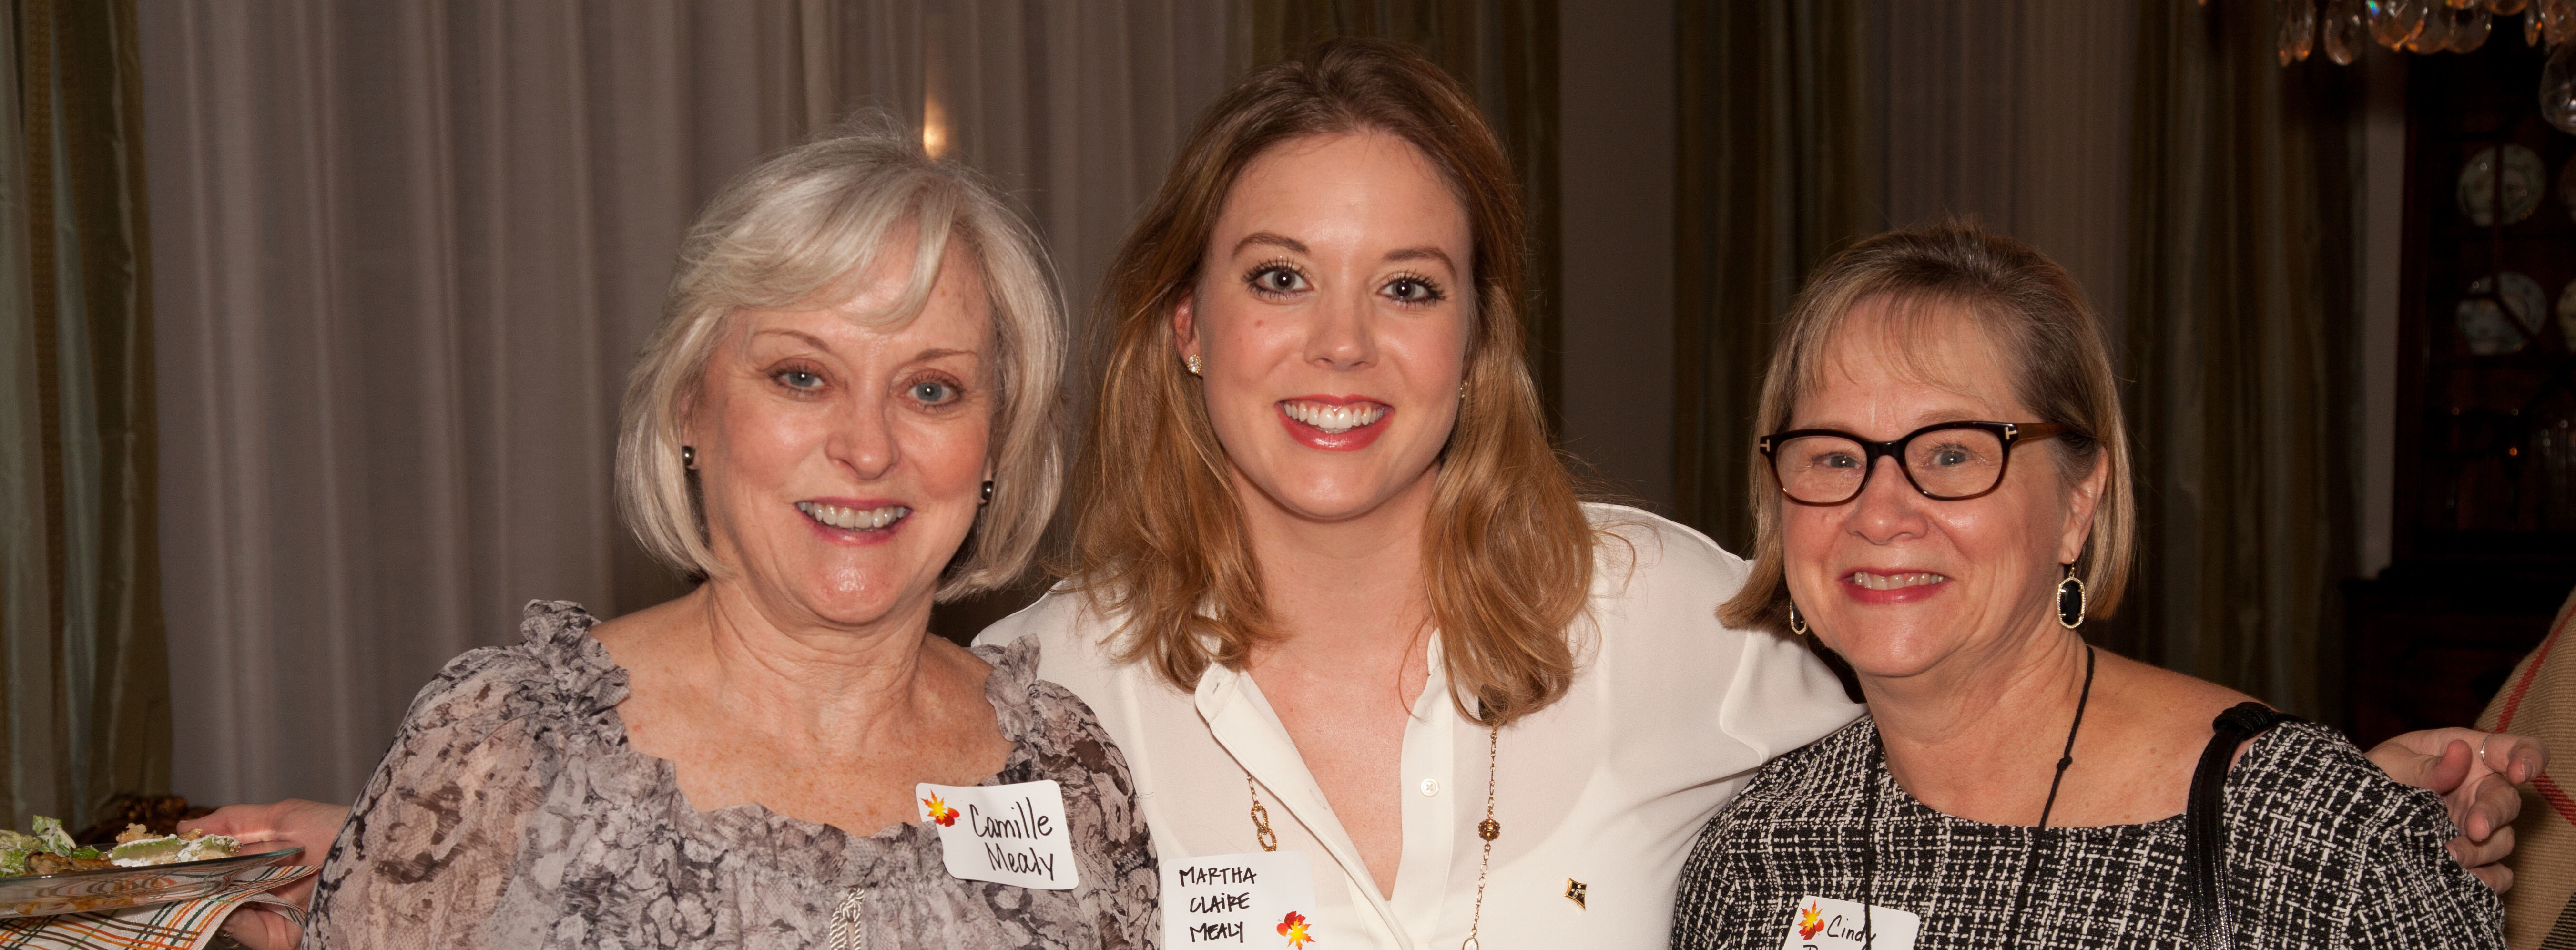 Camille Mealy, Martha Claire Mealy, and Cindy Balderach enjoy visiting at the Fall Feast.